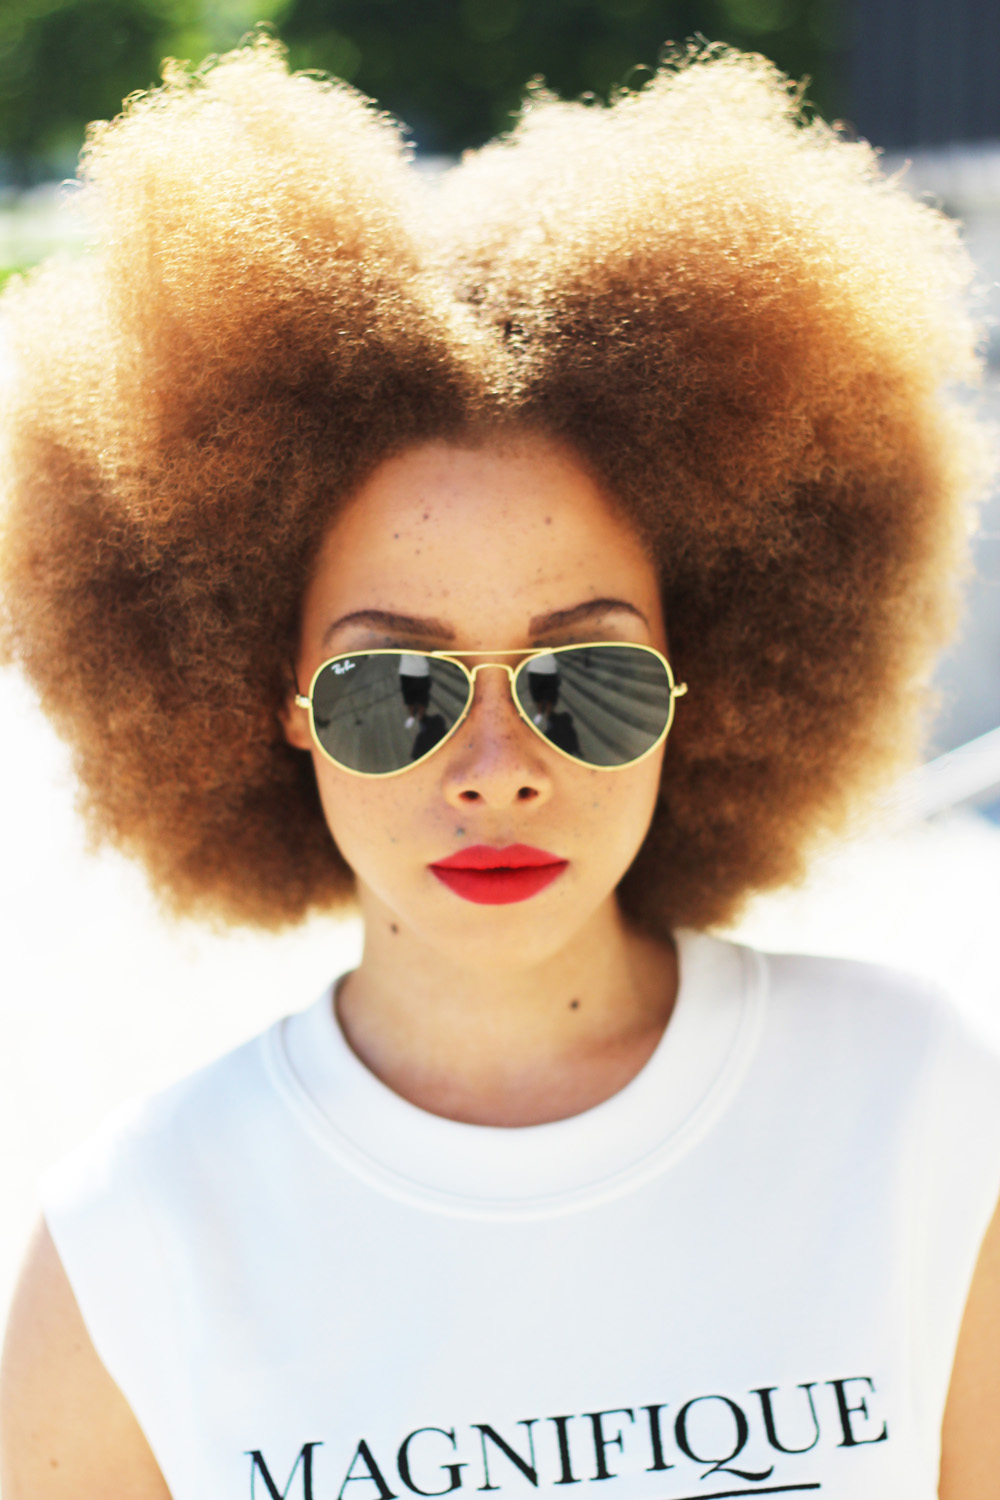 fatimayarie-afrohair-redhair-naturalcurls-rayban-glasses-img_8209